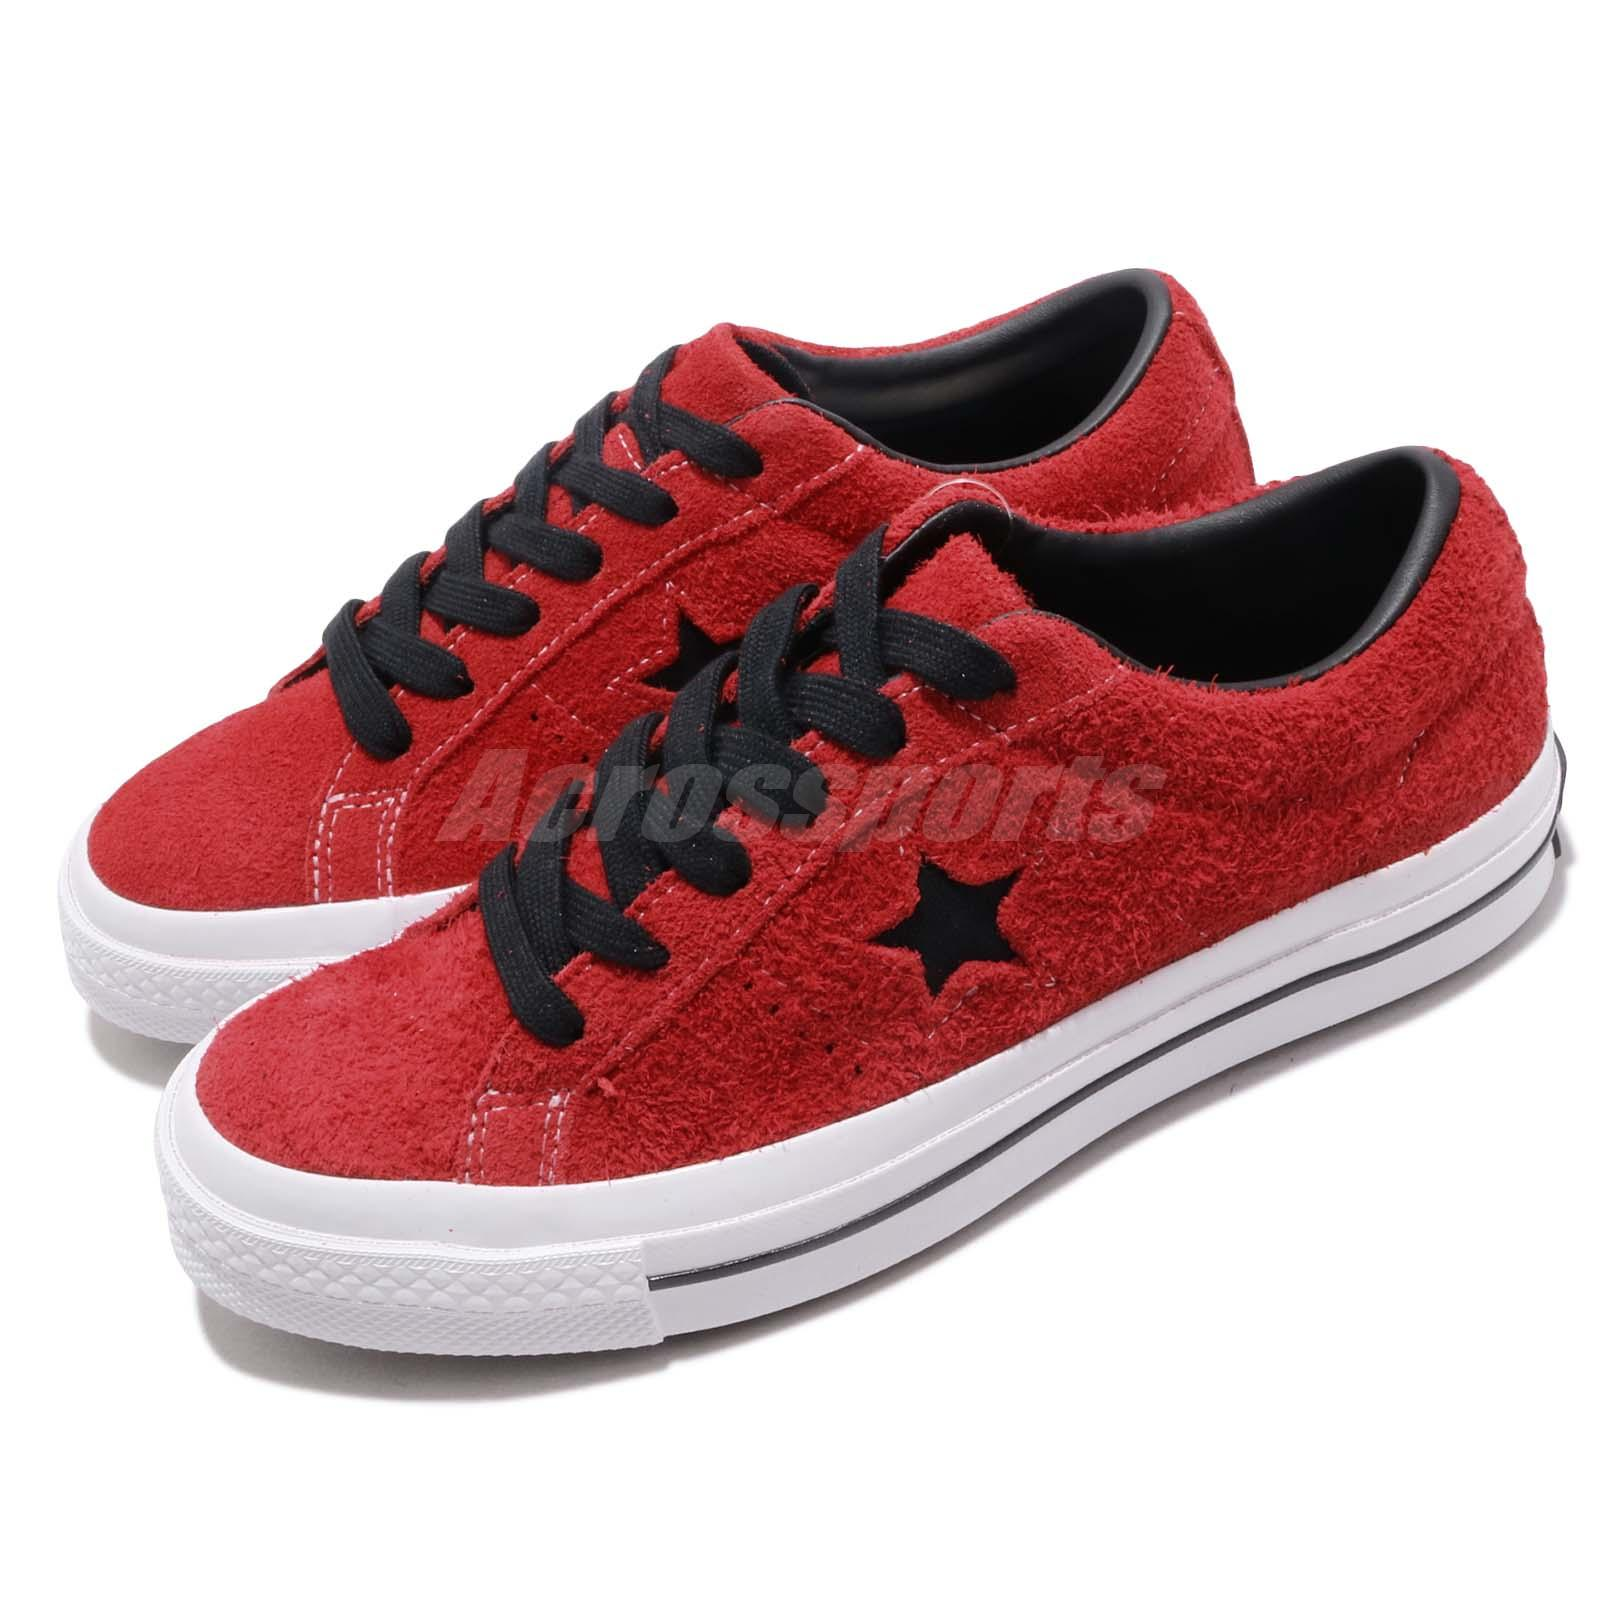 f4ef23060884 Details about Converse One Star OX Red Black White Men Women Casual Shoes  Sneakers 163246C